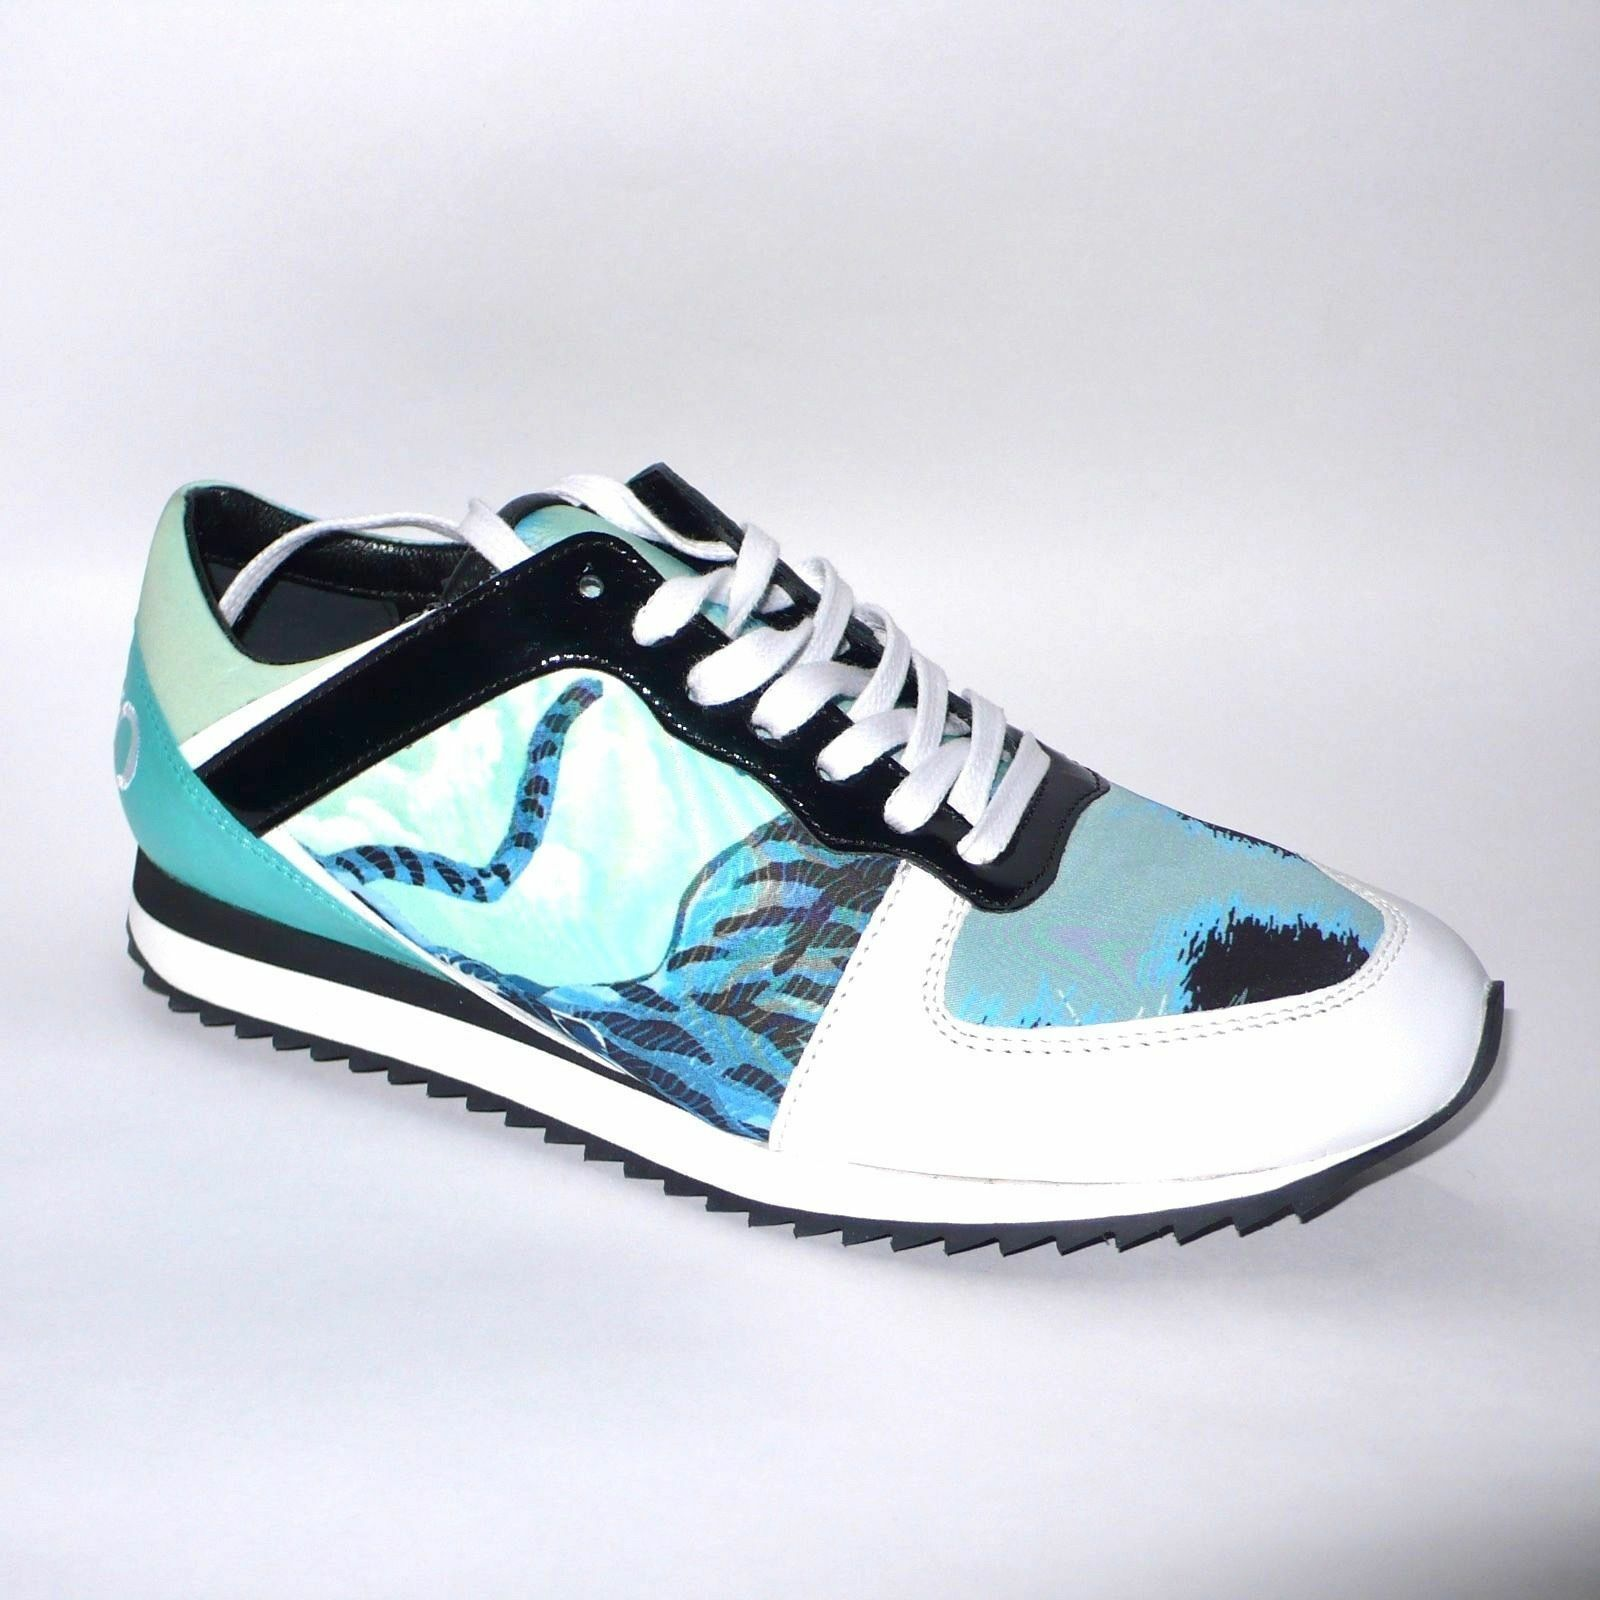 Kenzo Tiger Sneakers Sport shoes bluee Green EU 38